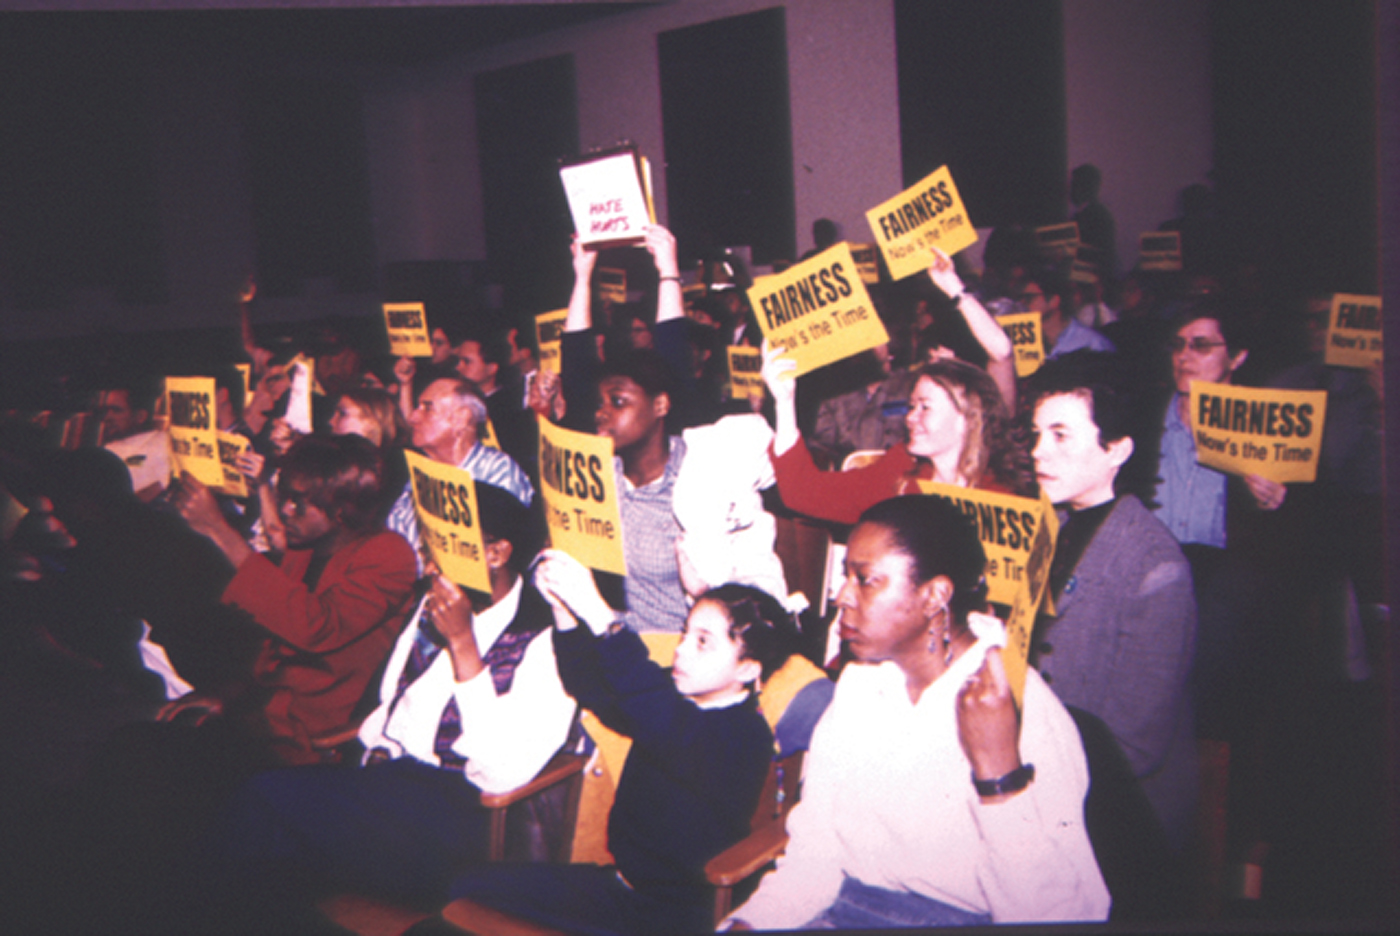 On January 12, 1999, supporters gathered in Louisville's City Hall to witness the reintroduction of the Fairness Ordinance before the Board of Aldermen. The ordinance passed that night after more than seven years of organizing. Fairness Co-Founders Carla Wallace and Pam McMichael are at the far right. Photo courtesy of the Fairness Campaign.